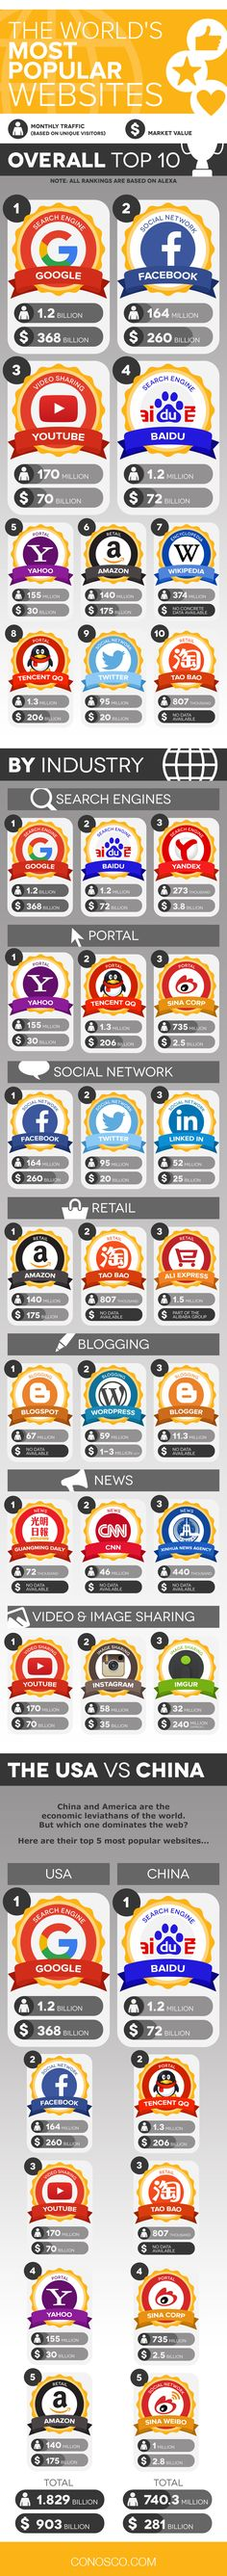 The World's Most Popular Websites #Infographic #Website #SocialMedia